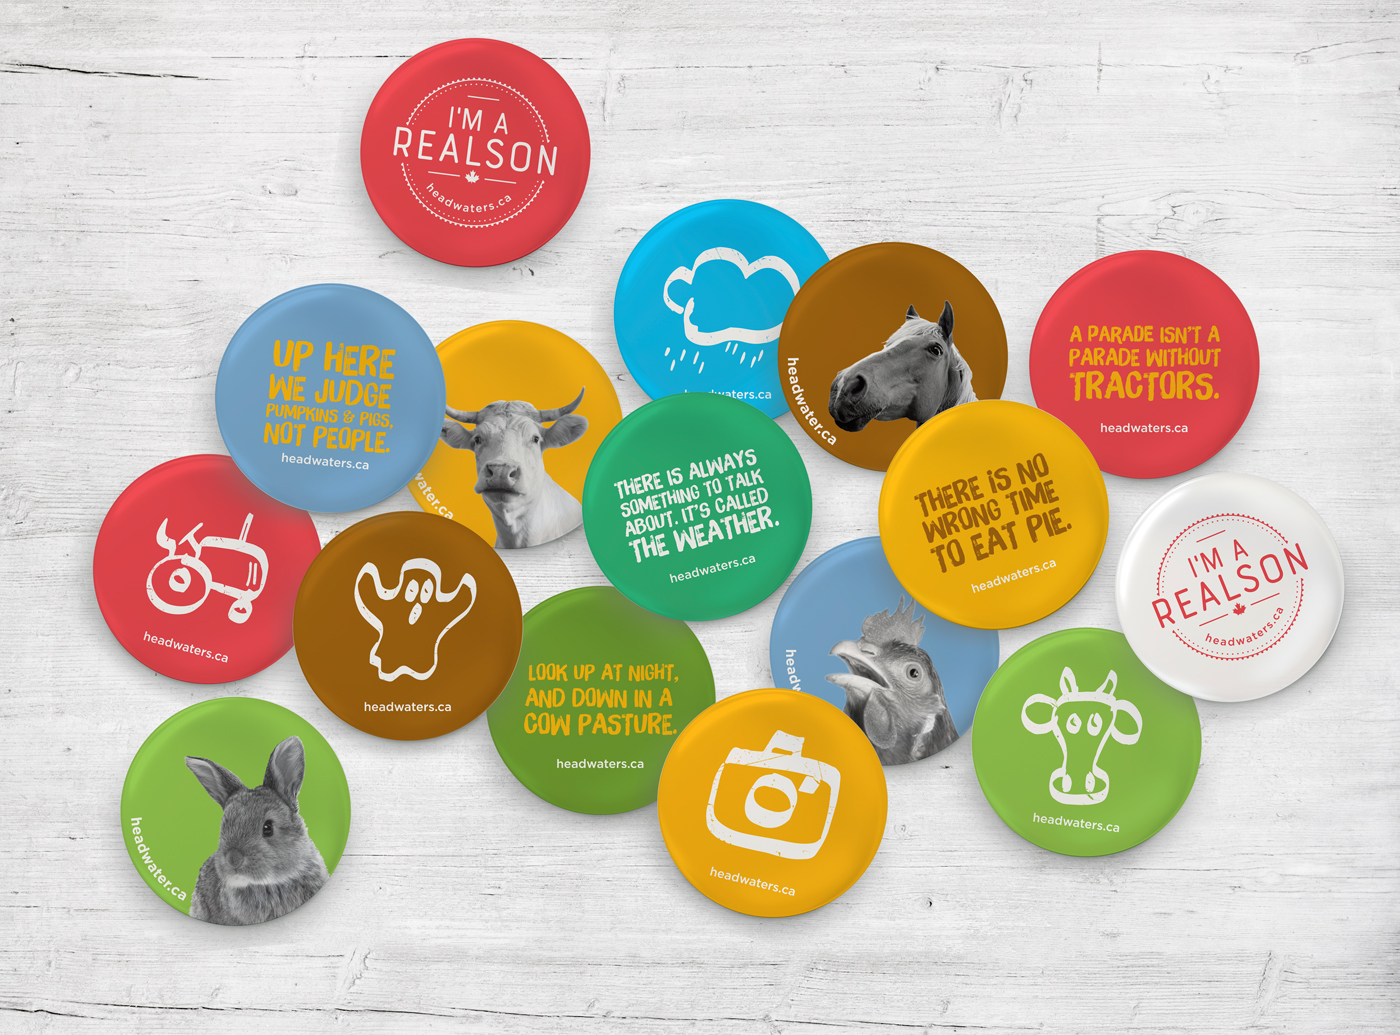 Promo buttons for Headwaters featuring agriculture. Including the cattle industry, equine, rabbit and chicken farms.